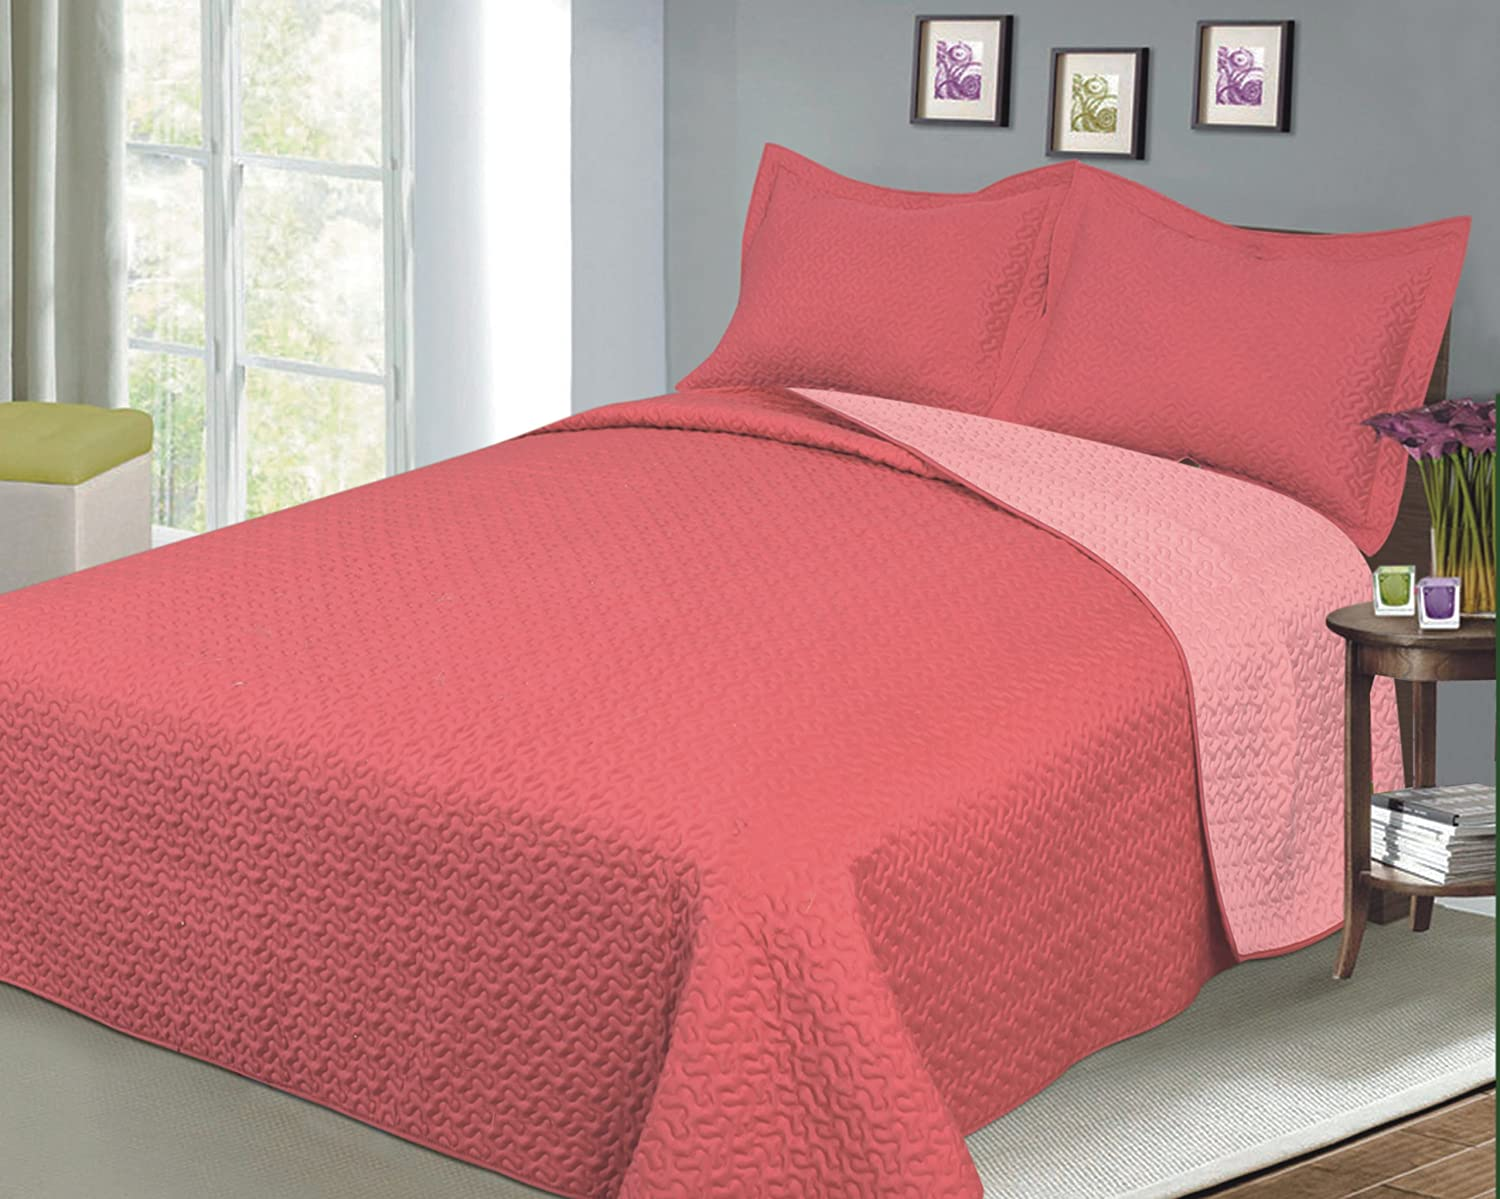 Reversible Solid Color Mini Quilt Sets, Full/Queen, Coral/Salmon